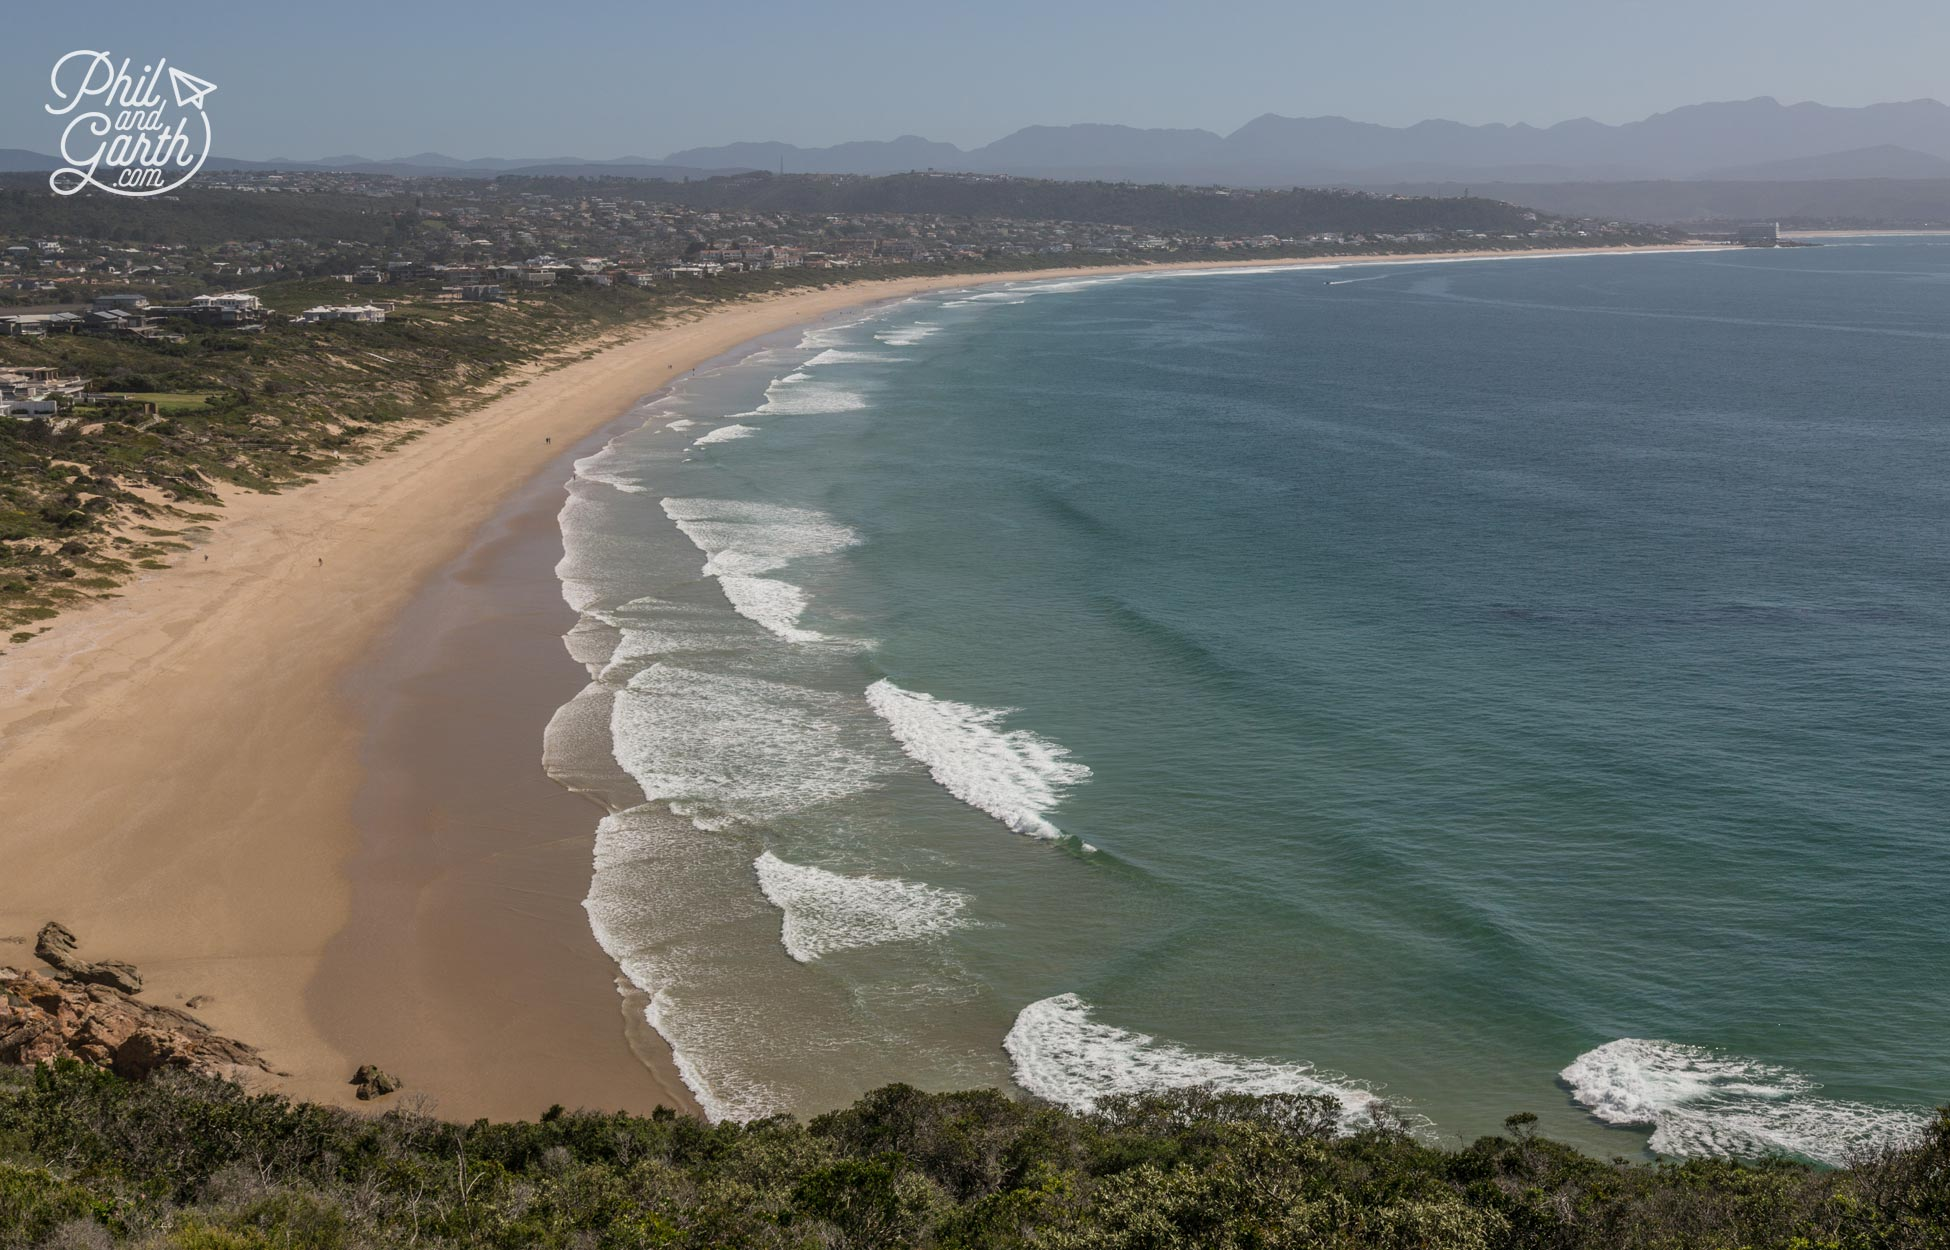 Beautiful Plettenburg Bay, beaches have miles and miles of golden sand